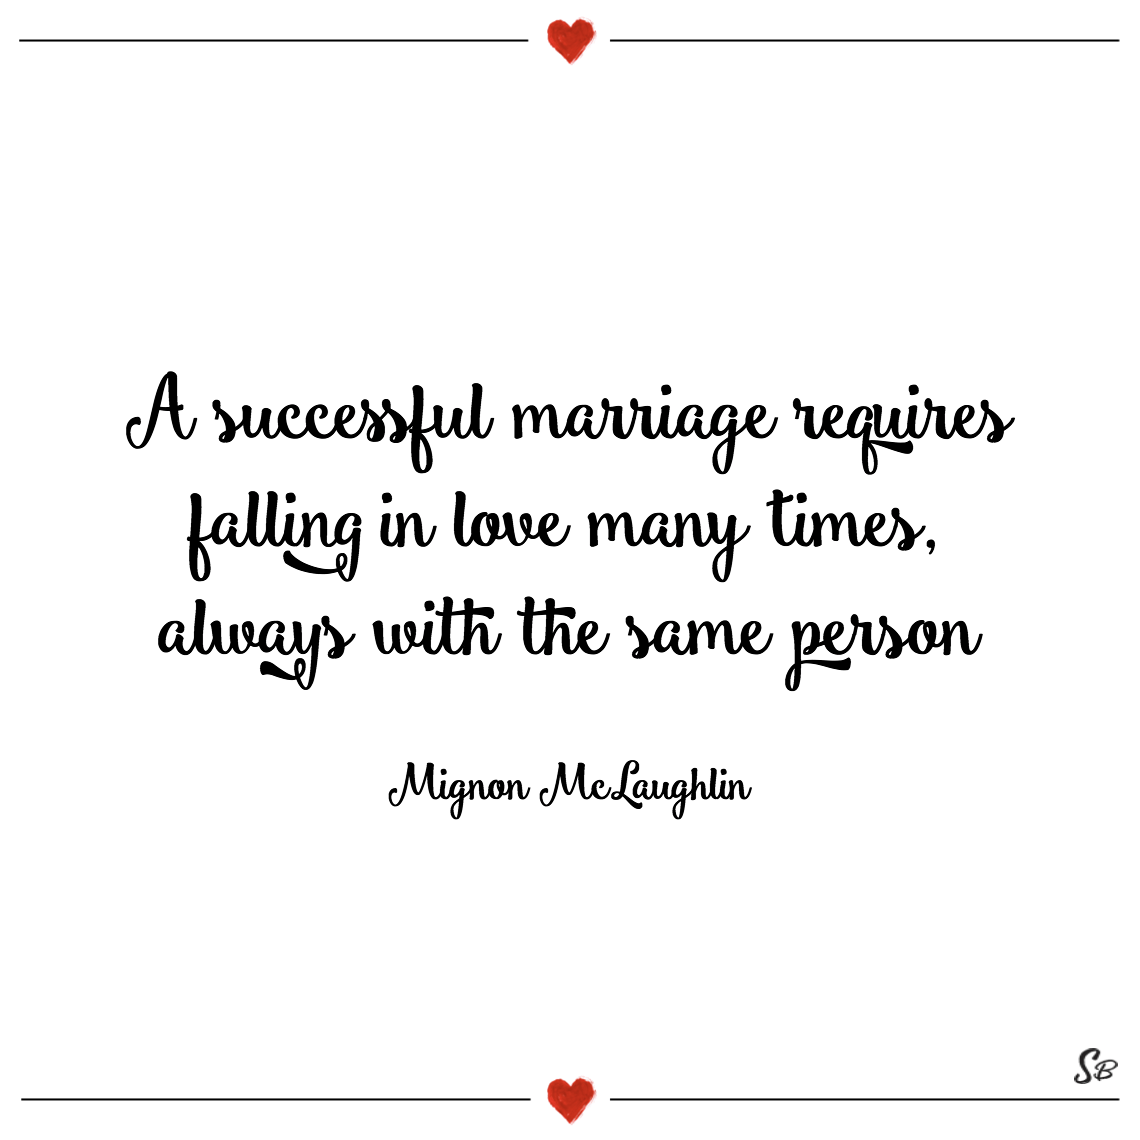 Love and marriage quotes for wedding invitations